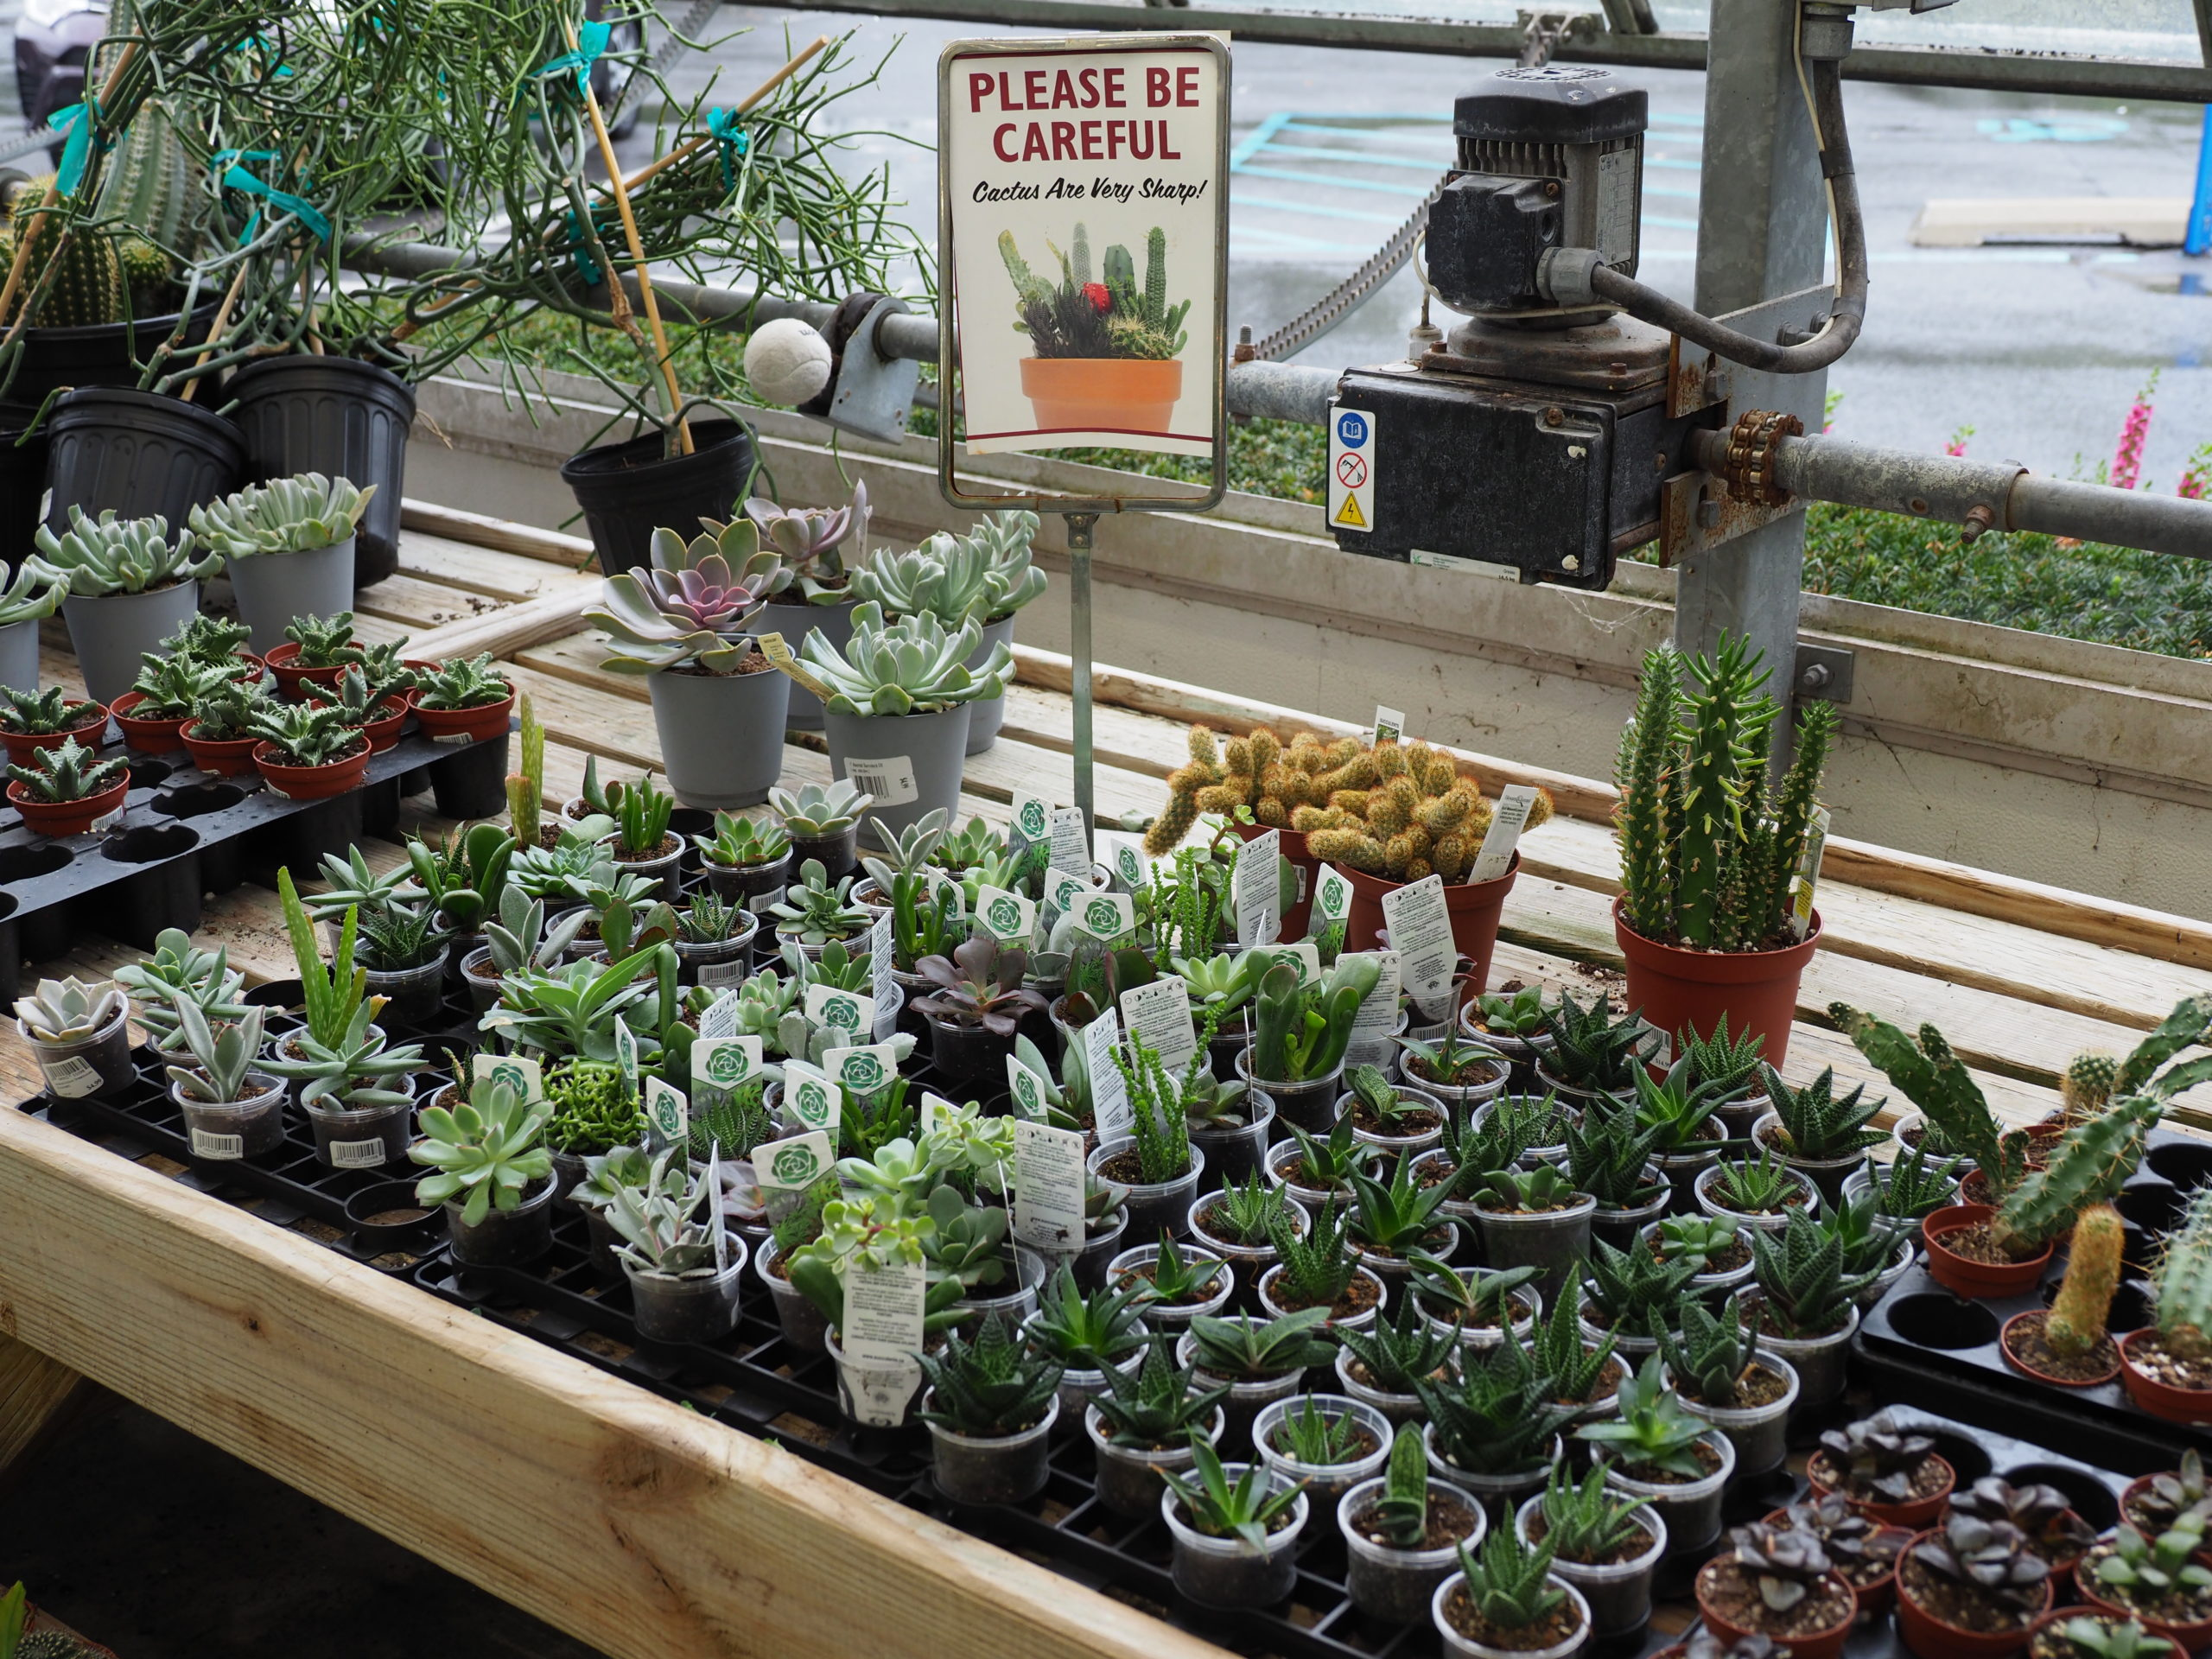 Cacti and succulents are slow growing, need plenty of light and can be quite fascinating when they flower. Great for children since they require little care but be sure to teach that the spines, even the tiniest, can be dangerous.